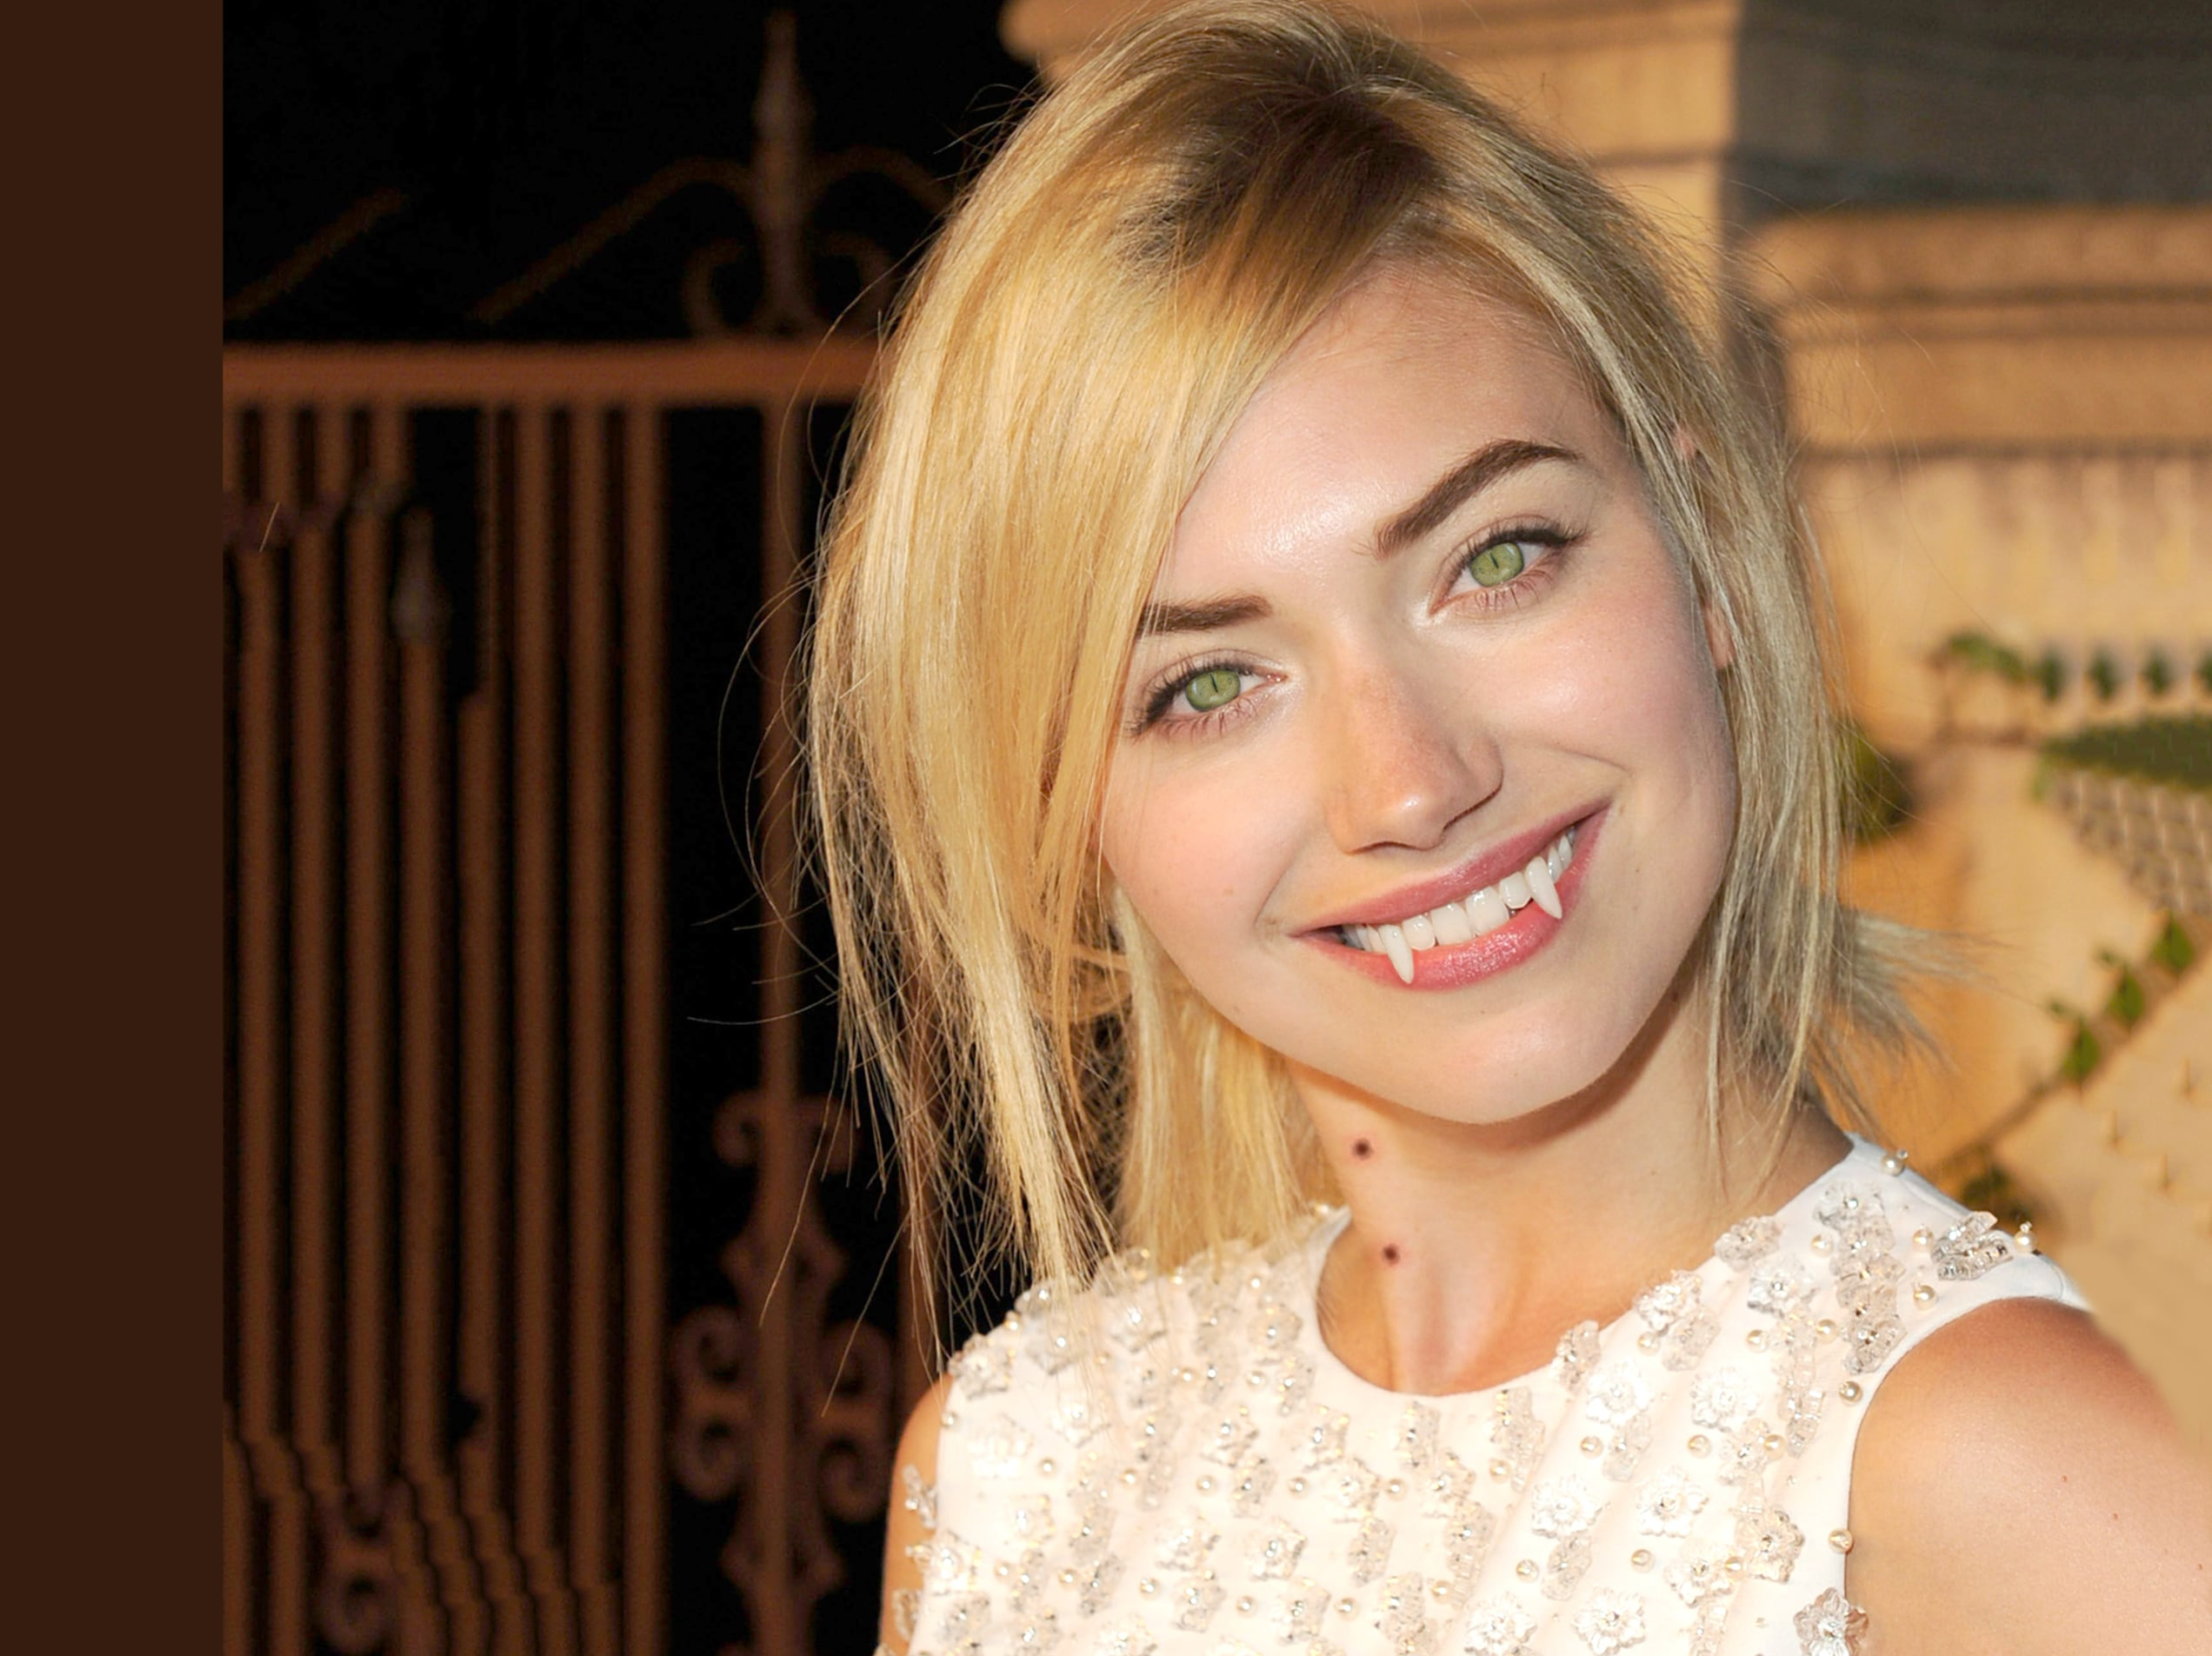 Imogen Poots Hd Wallpapers 7wallpapers Net